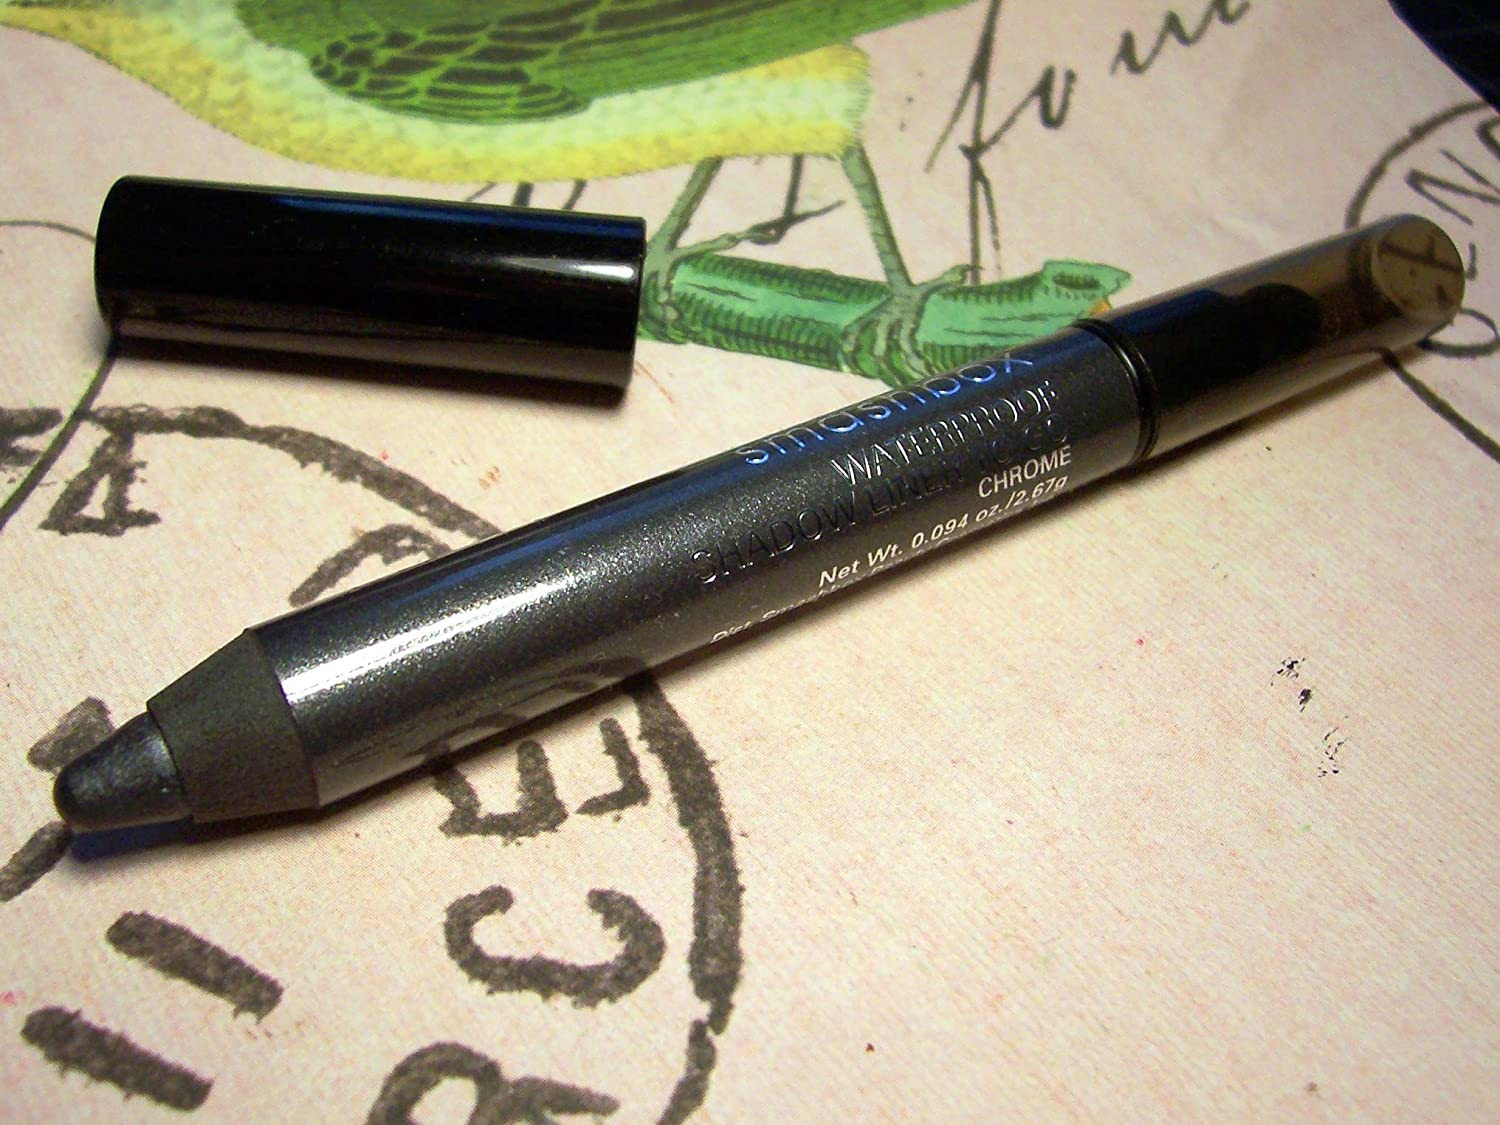 Amazon.com : SMASHBOX Waterproof Shadow Liner To Go - Chrome u/b ...